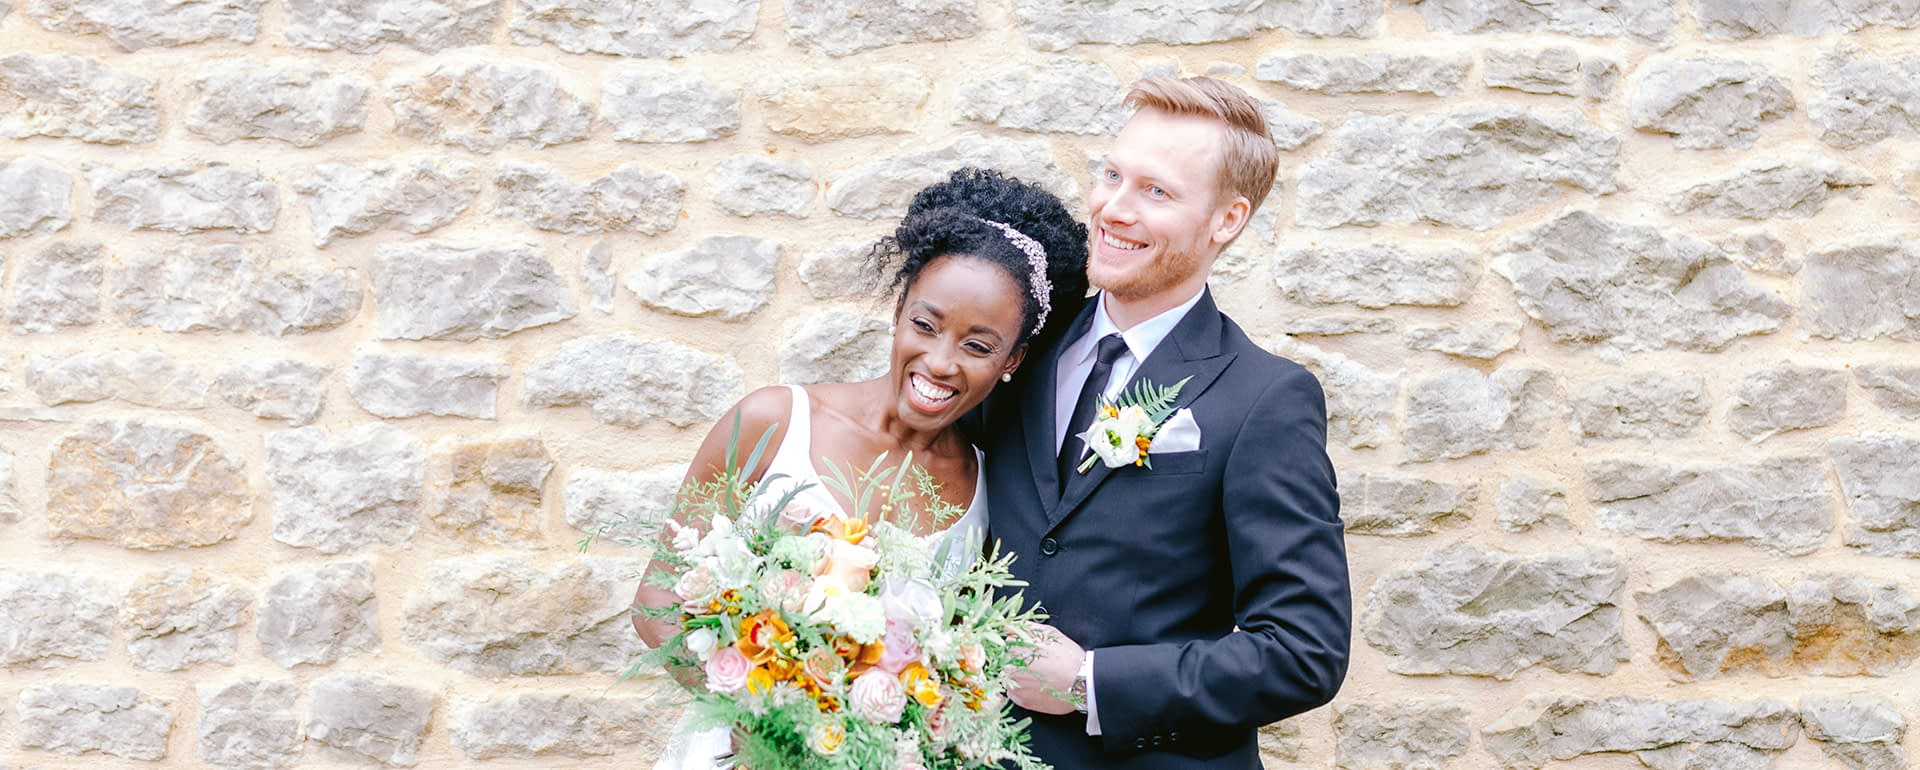 Bright Summer Wedding Inspiration with Real Couple at Huntsmill Farm